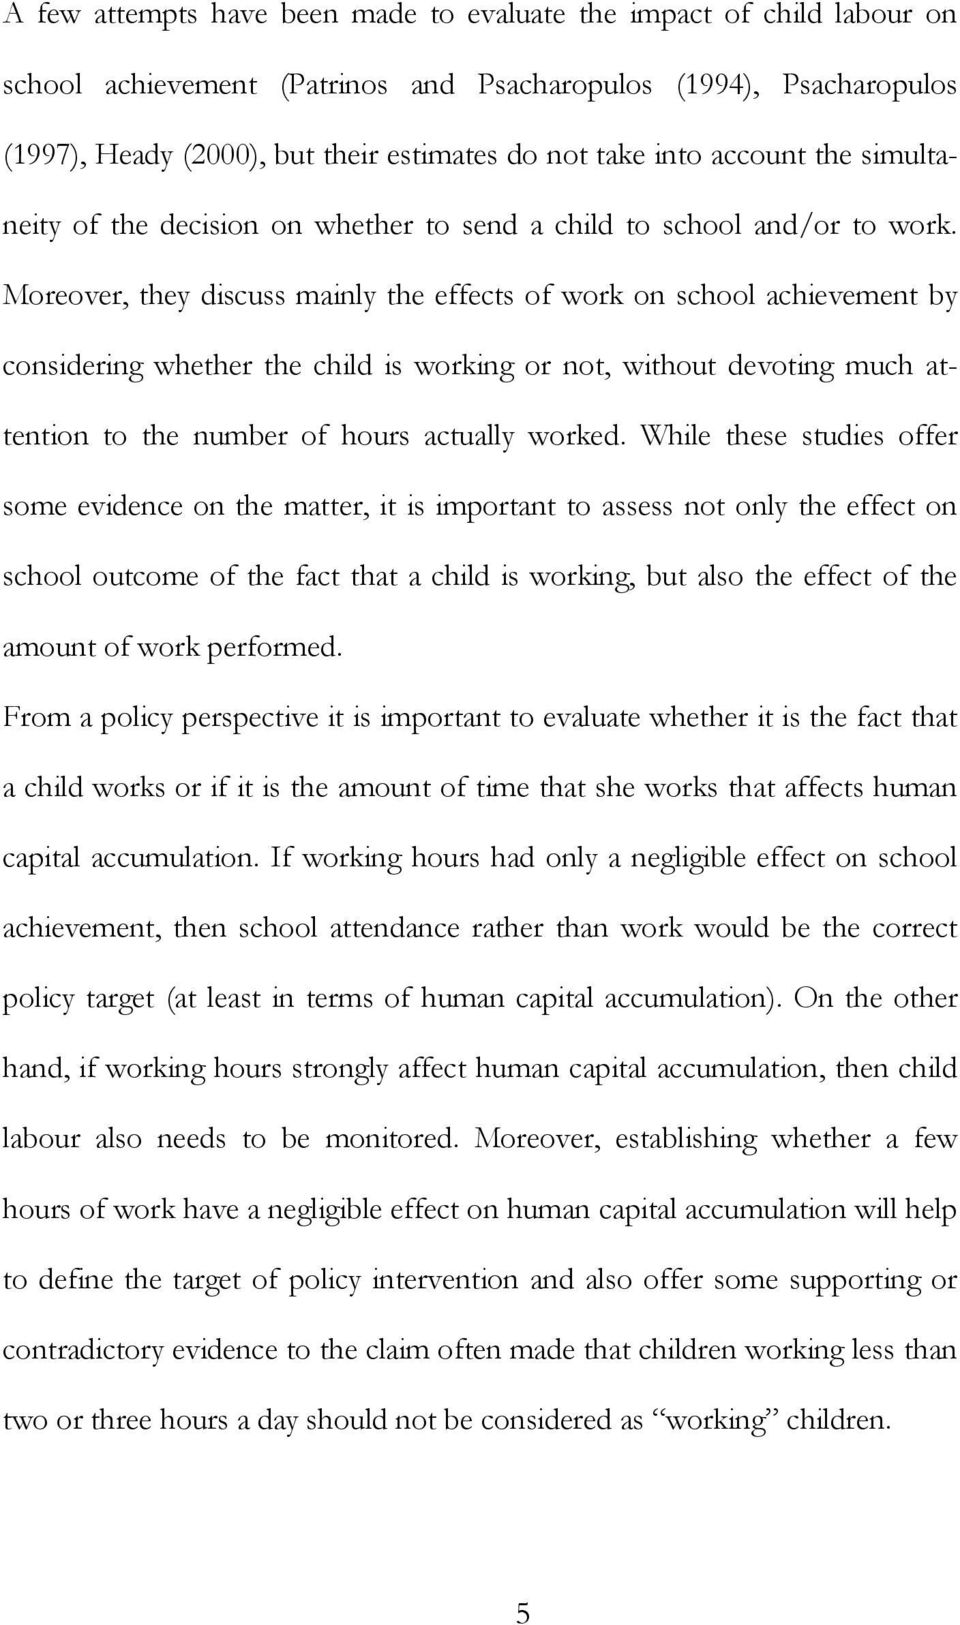 Moreover, they discuss mainly the effects of work on school achievement by considering whether the child is working or not, without devoting much attention to the number of hours actually worked.